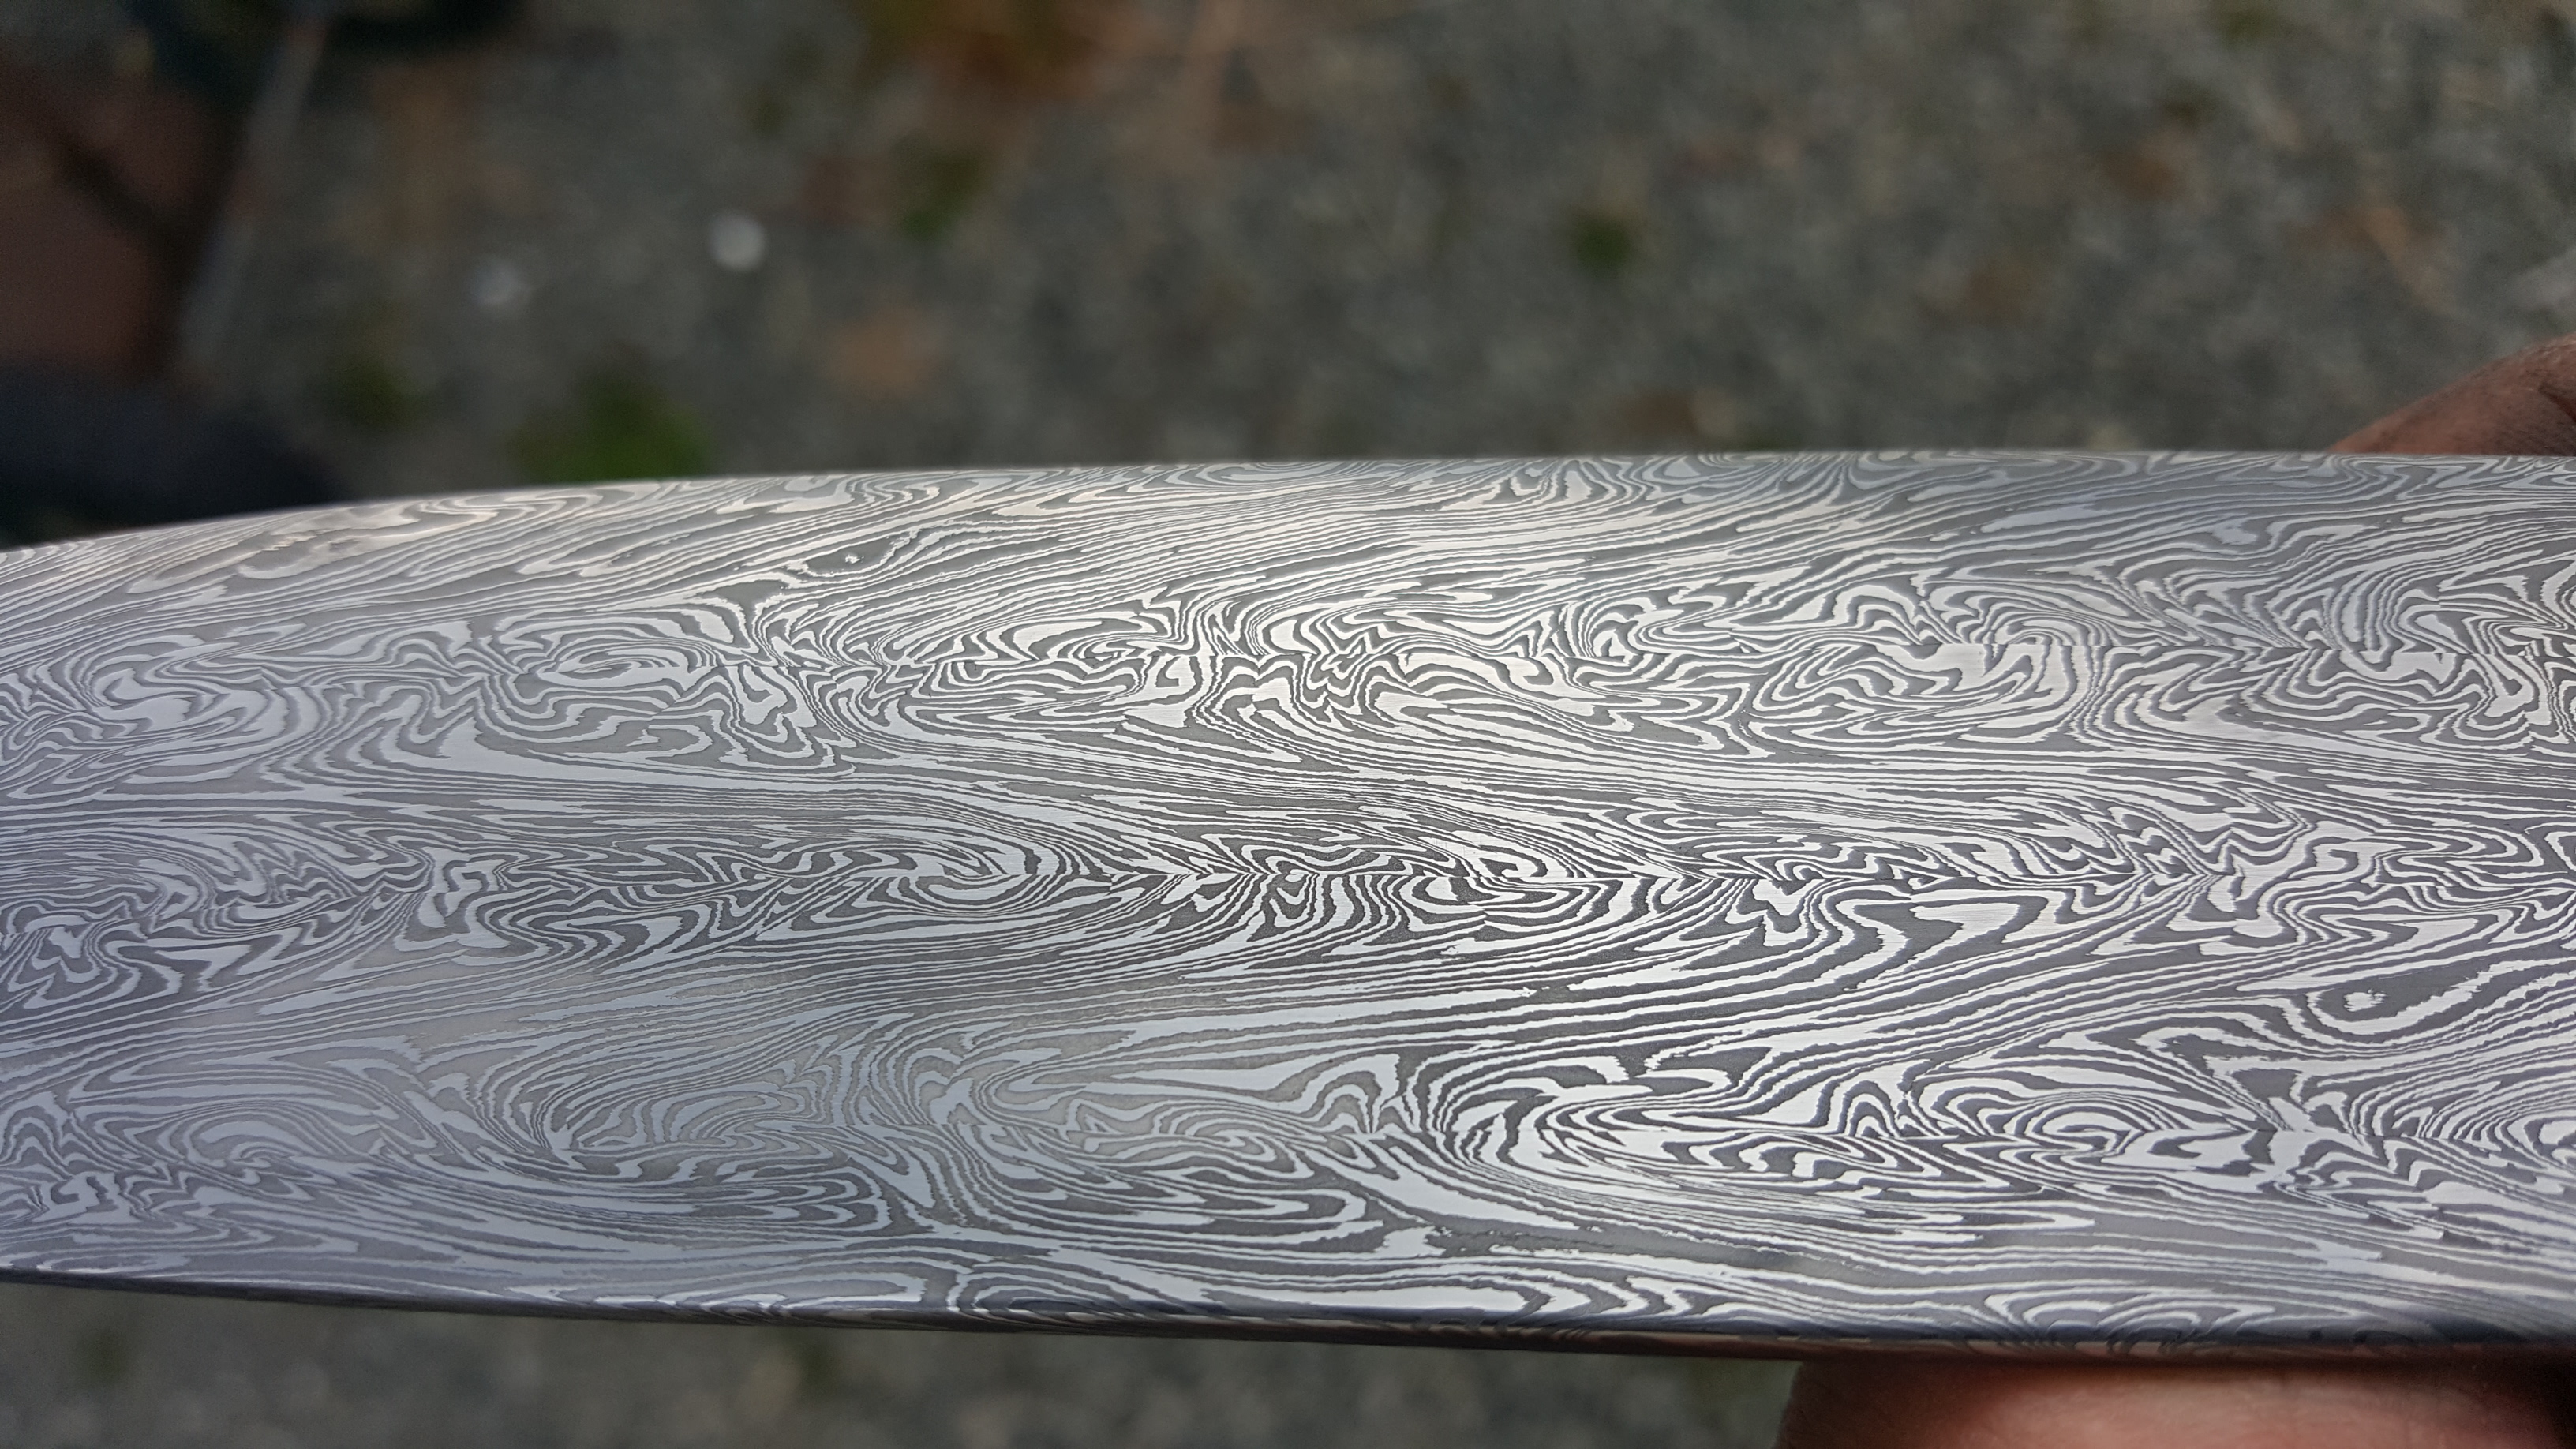 BBQ knife, blade detail